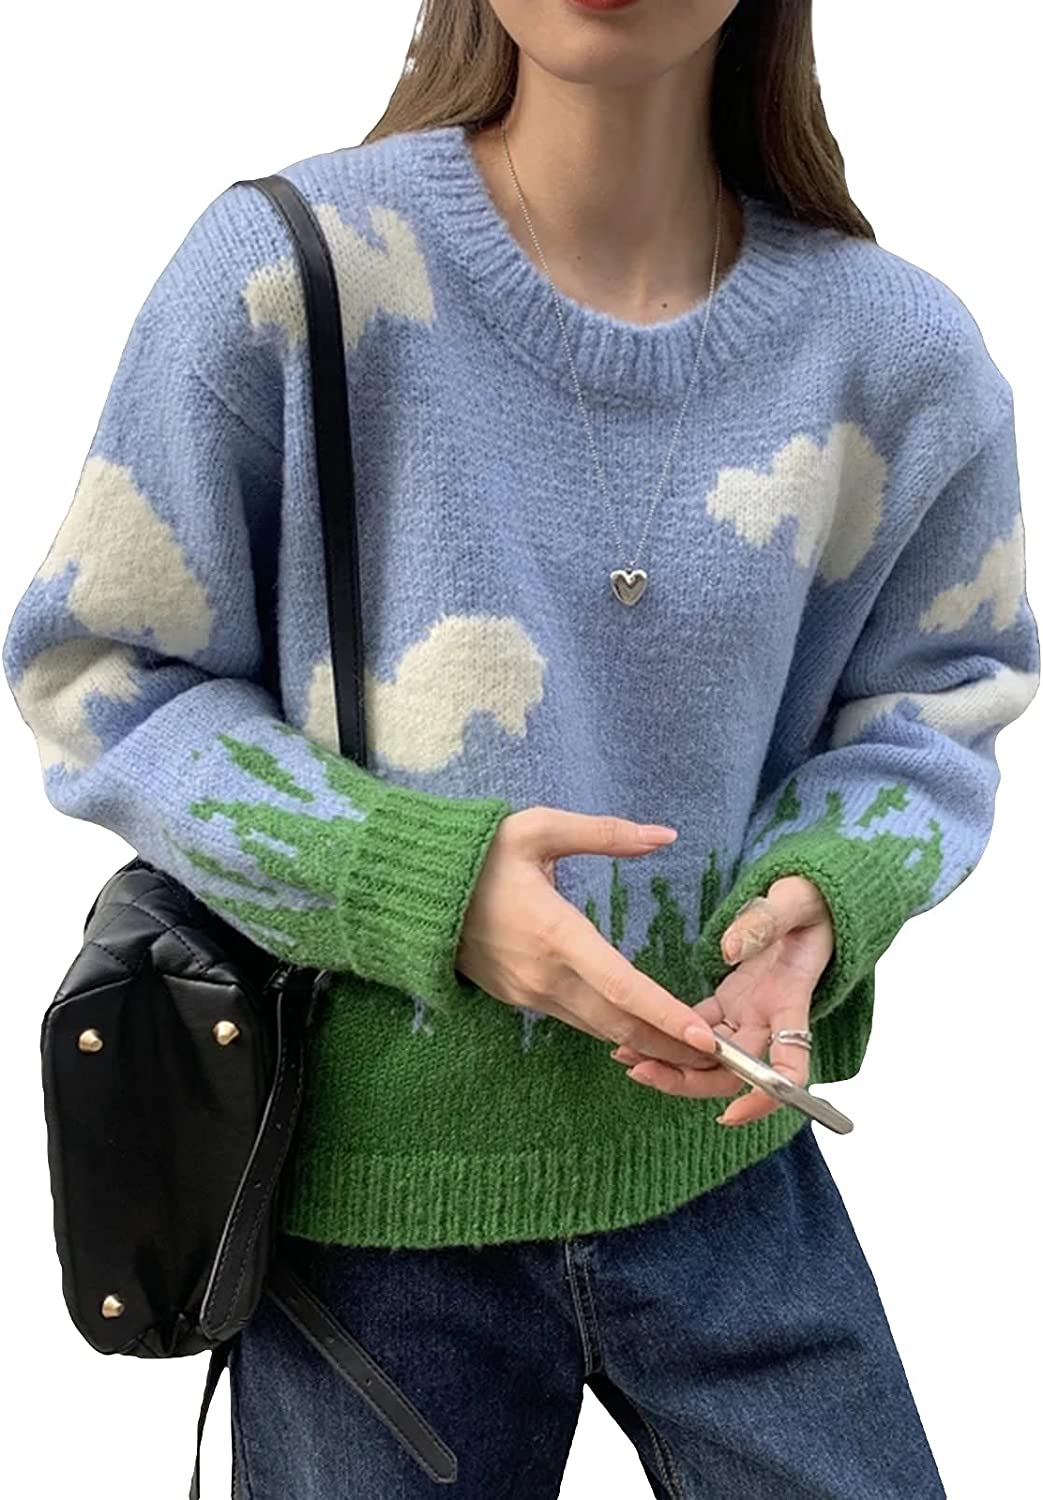 Vintage Oversized Sweaters for Women Long Sleeve Graphic Print Knit Sweater Y2k Aesthetic Baggy Pullover Sweater